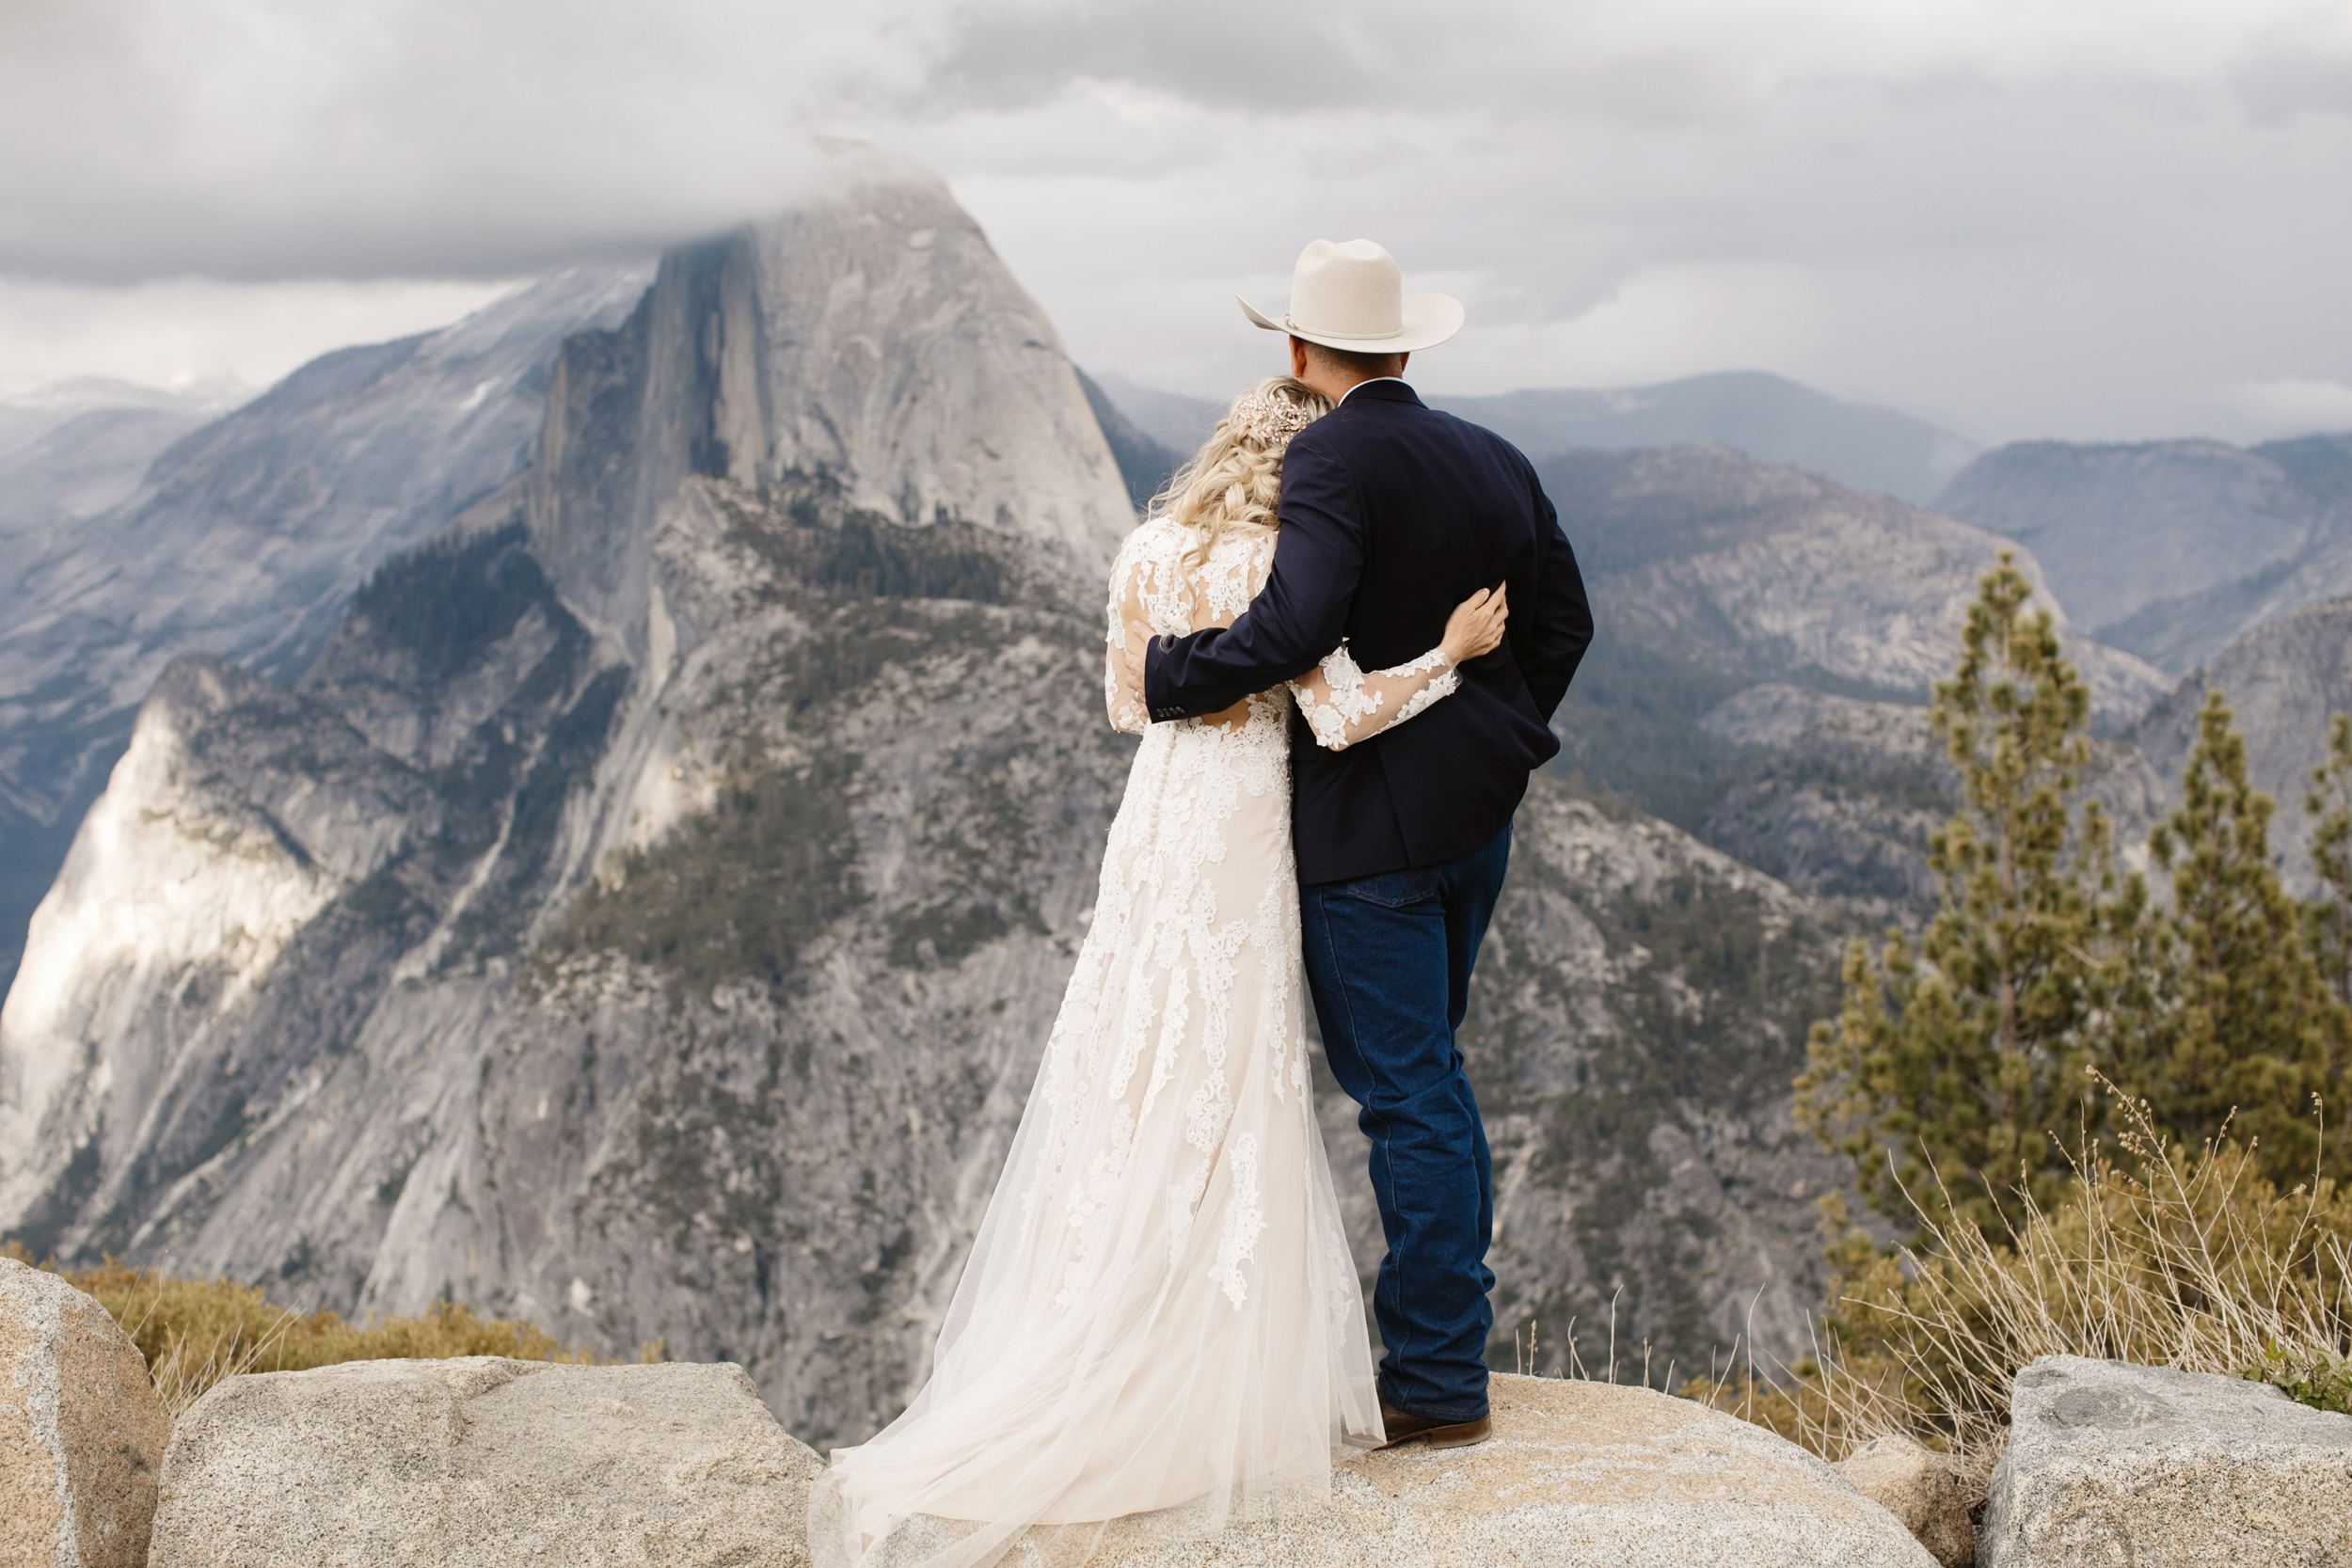 Glacier Point Yosemite Destination Elopement Photographer Colby and Jess colbyandjess.com